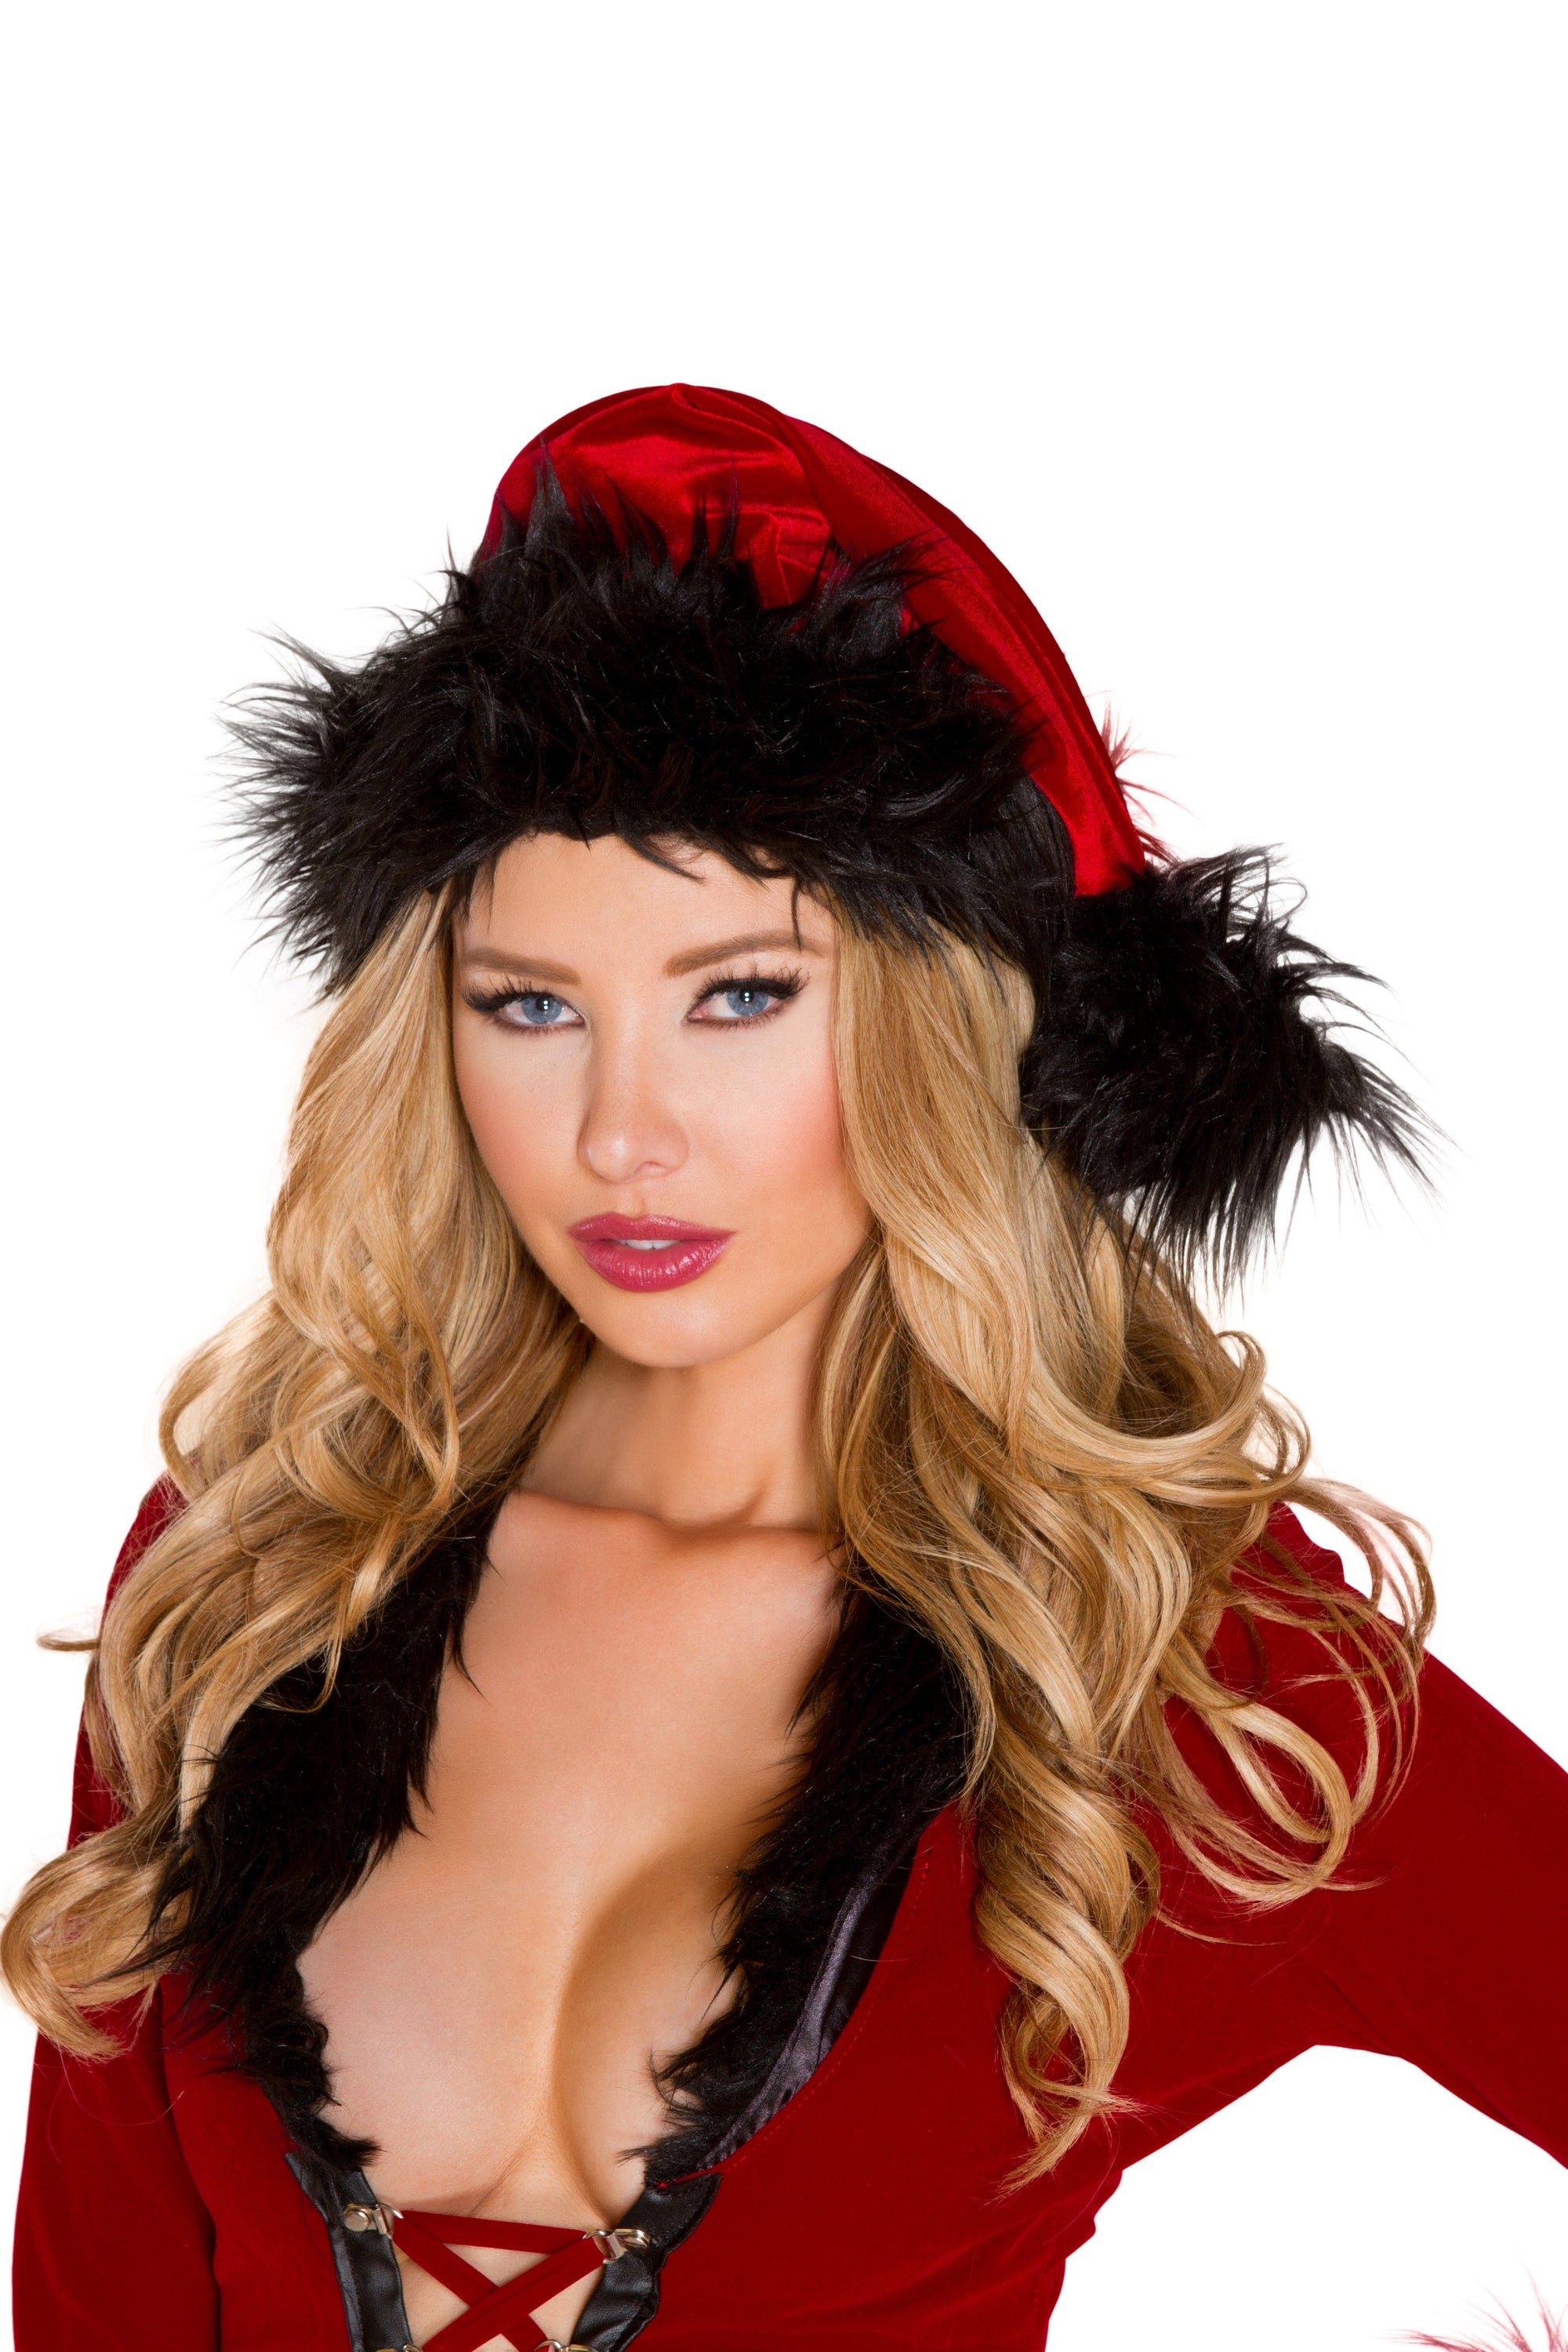 Buy Red and Black Fur Trimmed Evil Santa Christmas Hat from Rave Fix for $10.50 with Same Day Shipping Designed by vendor-unknown C181-Red/Blk-O/S